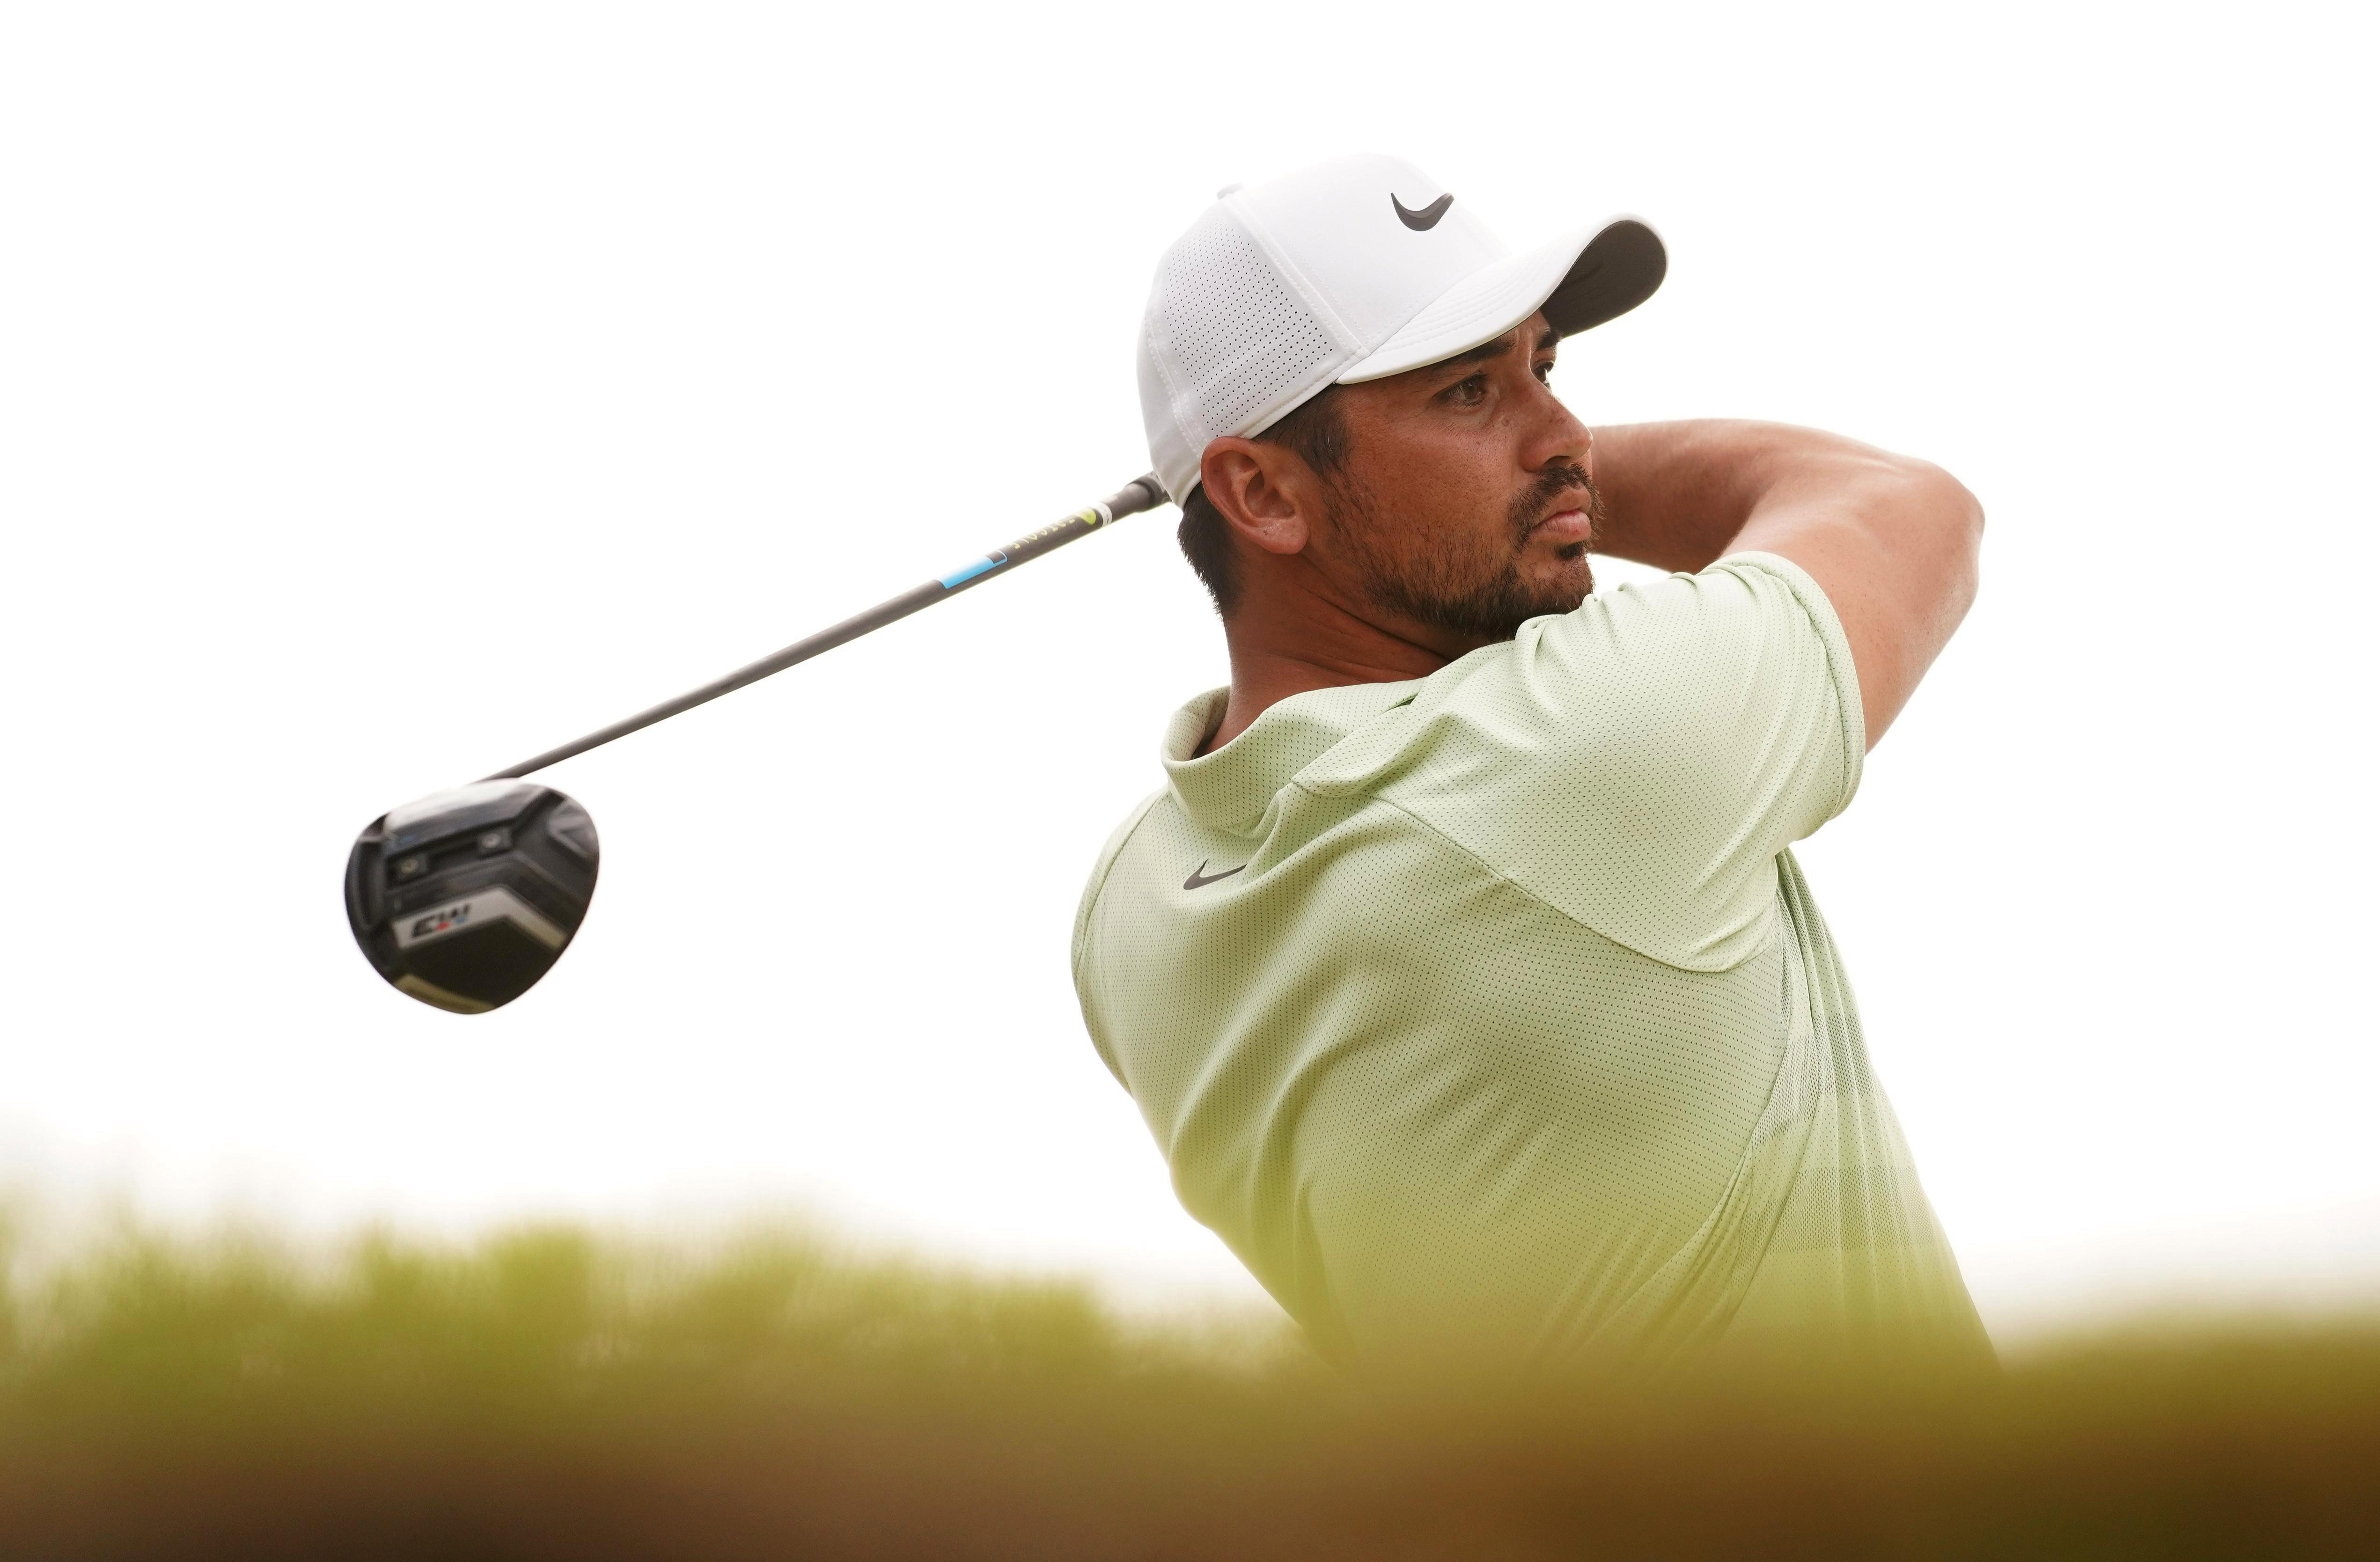 Jason Day is in terrific form this season